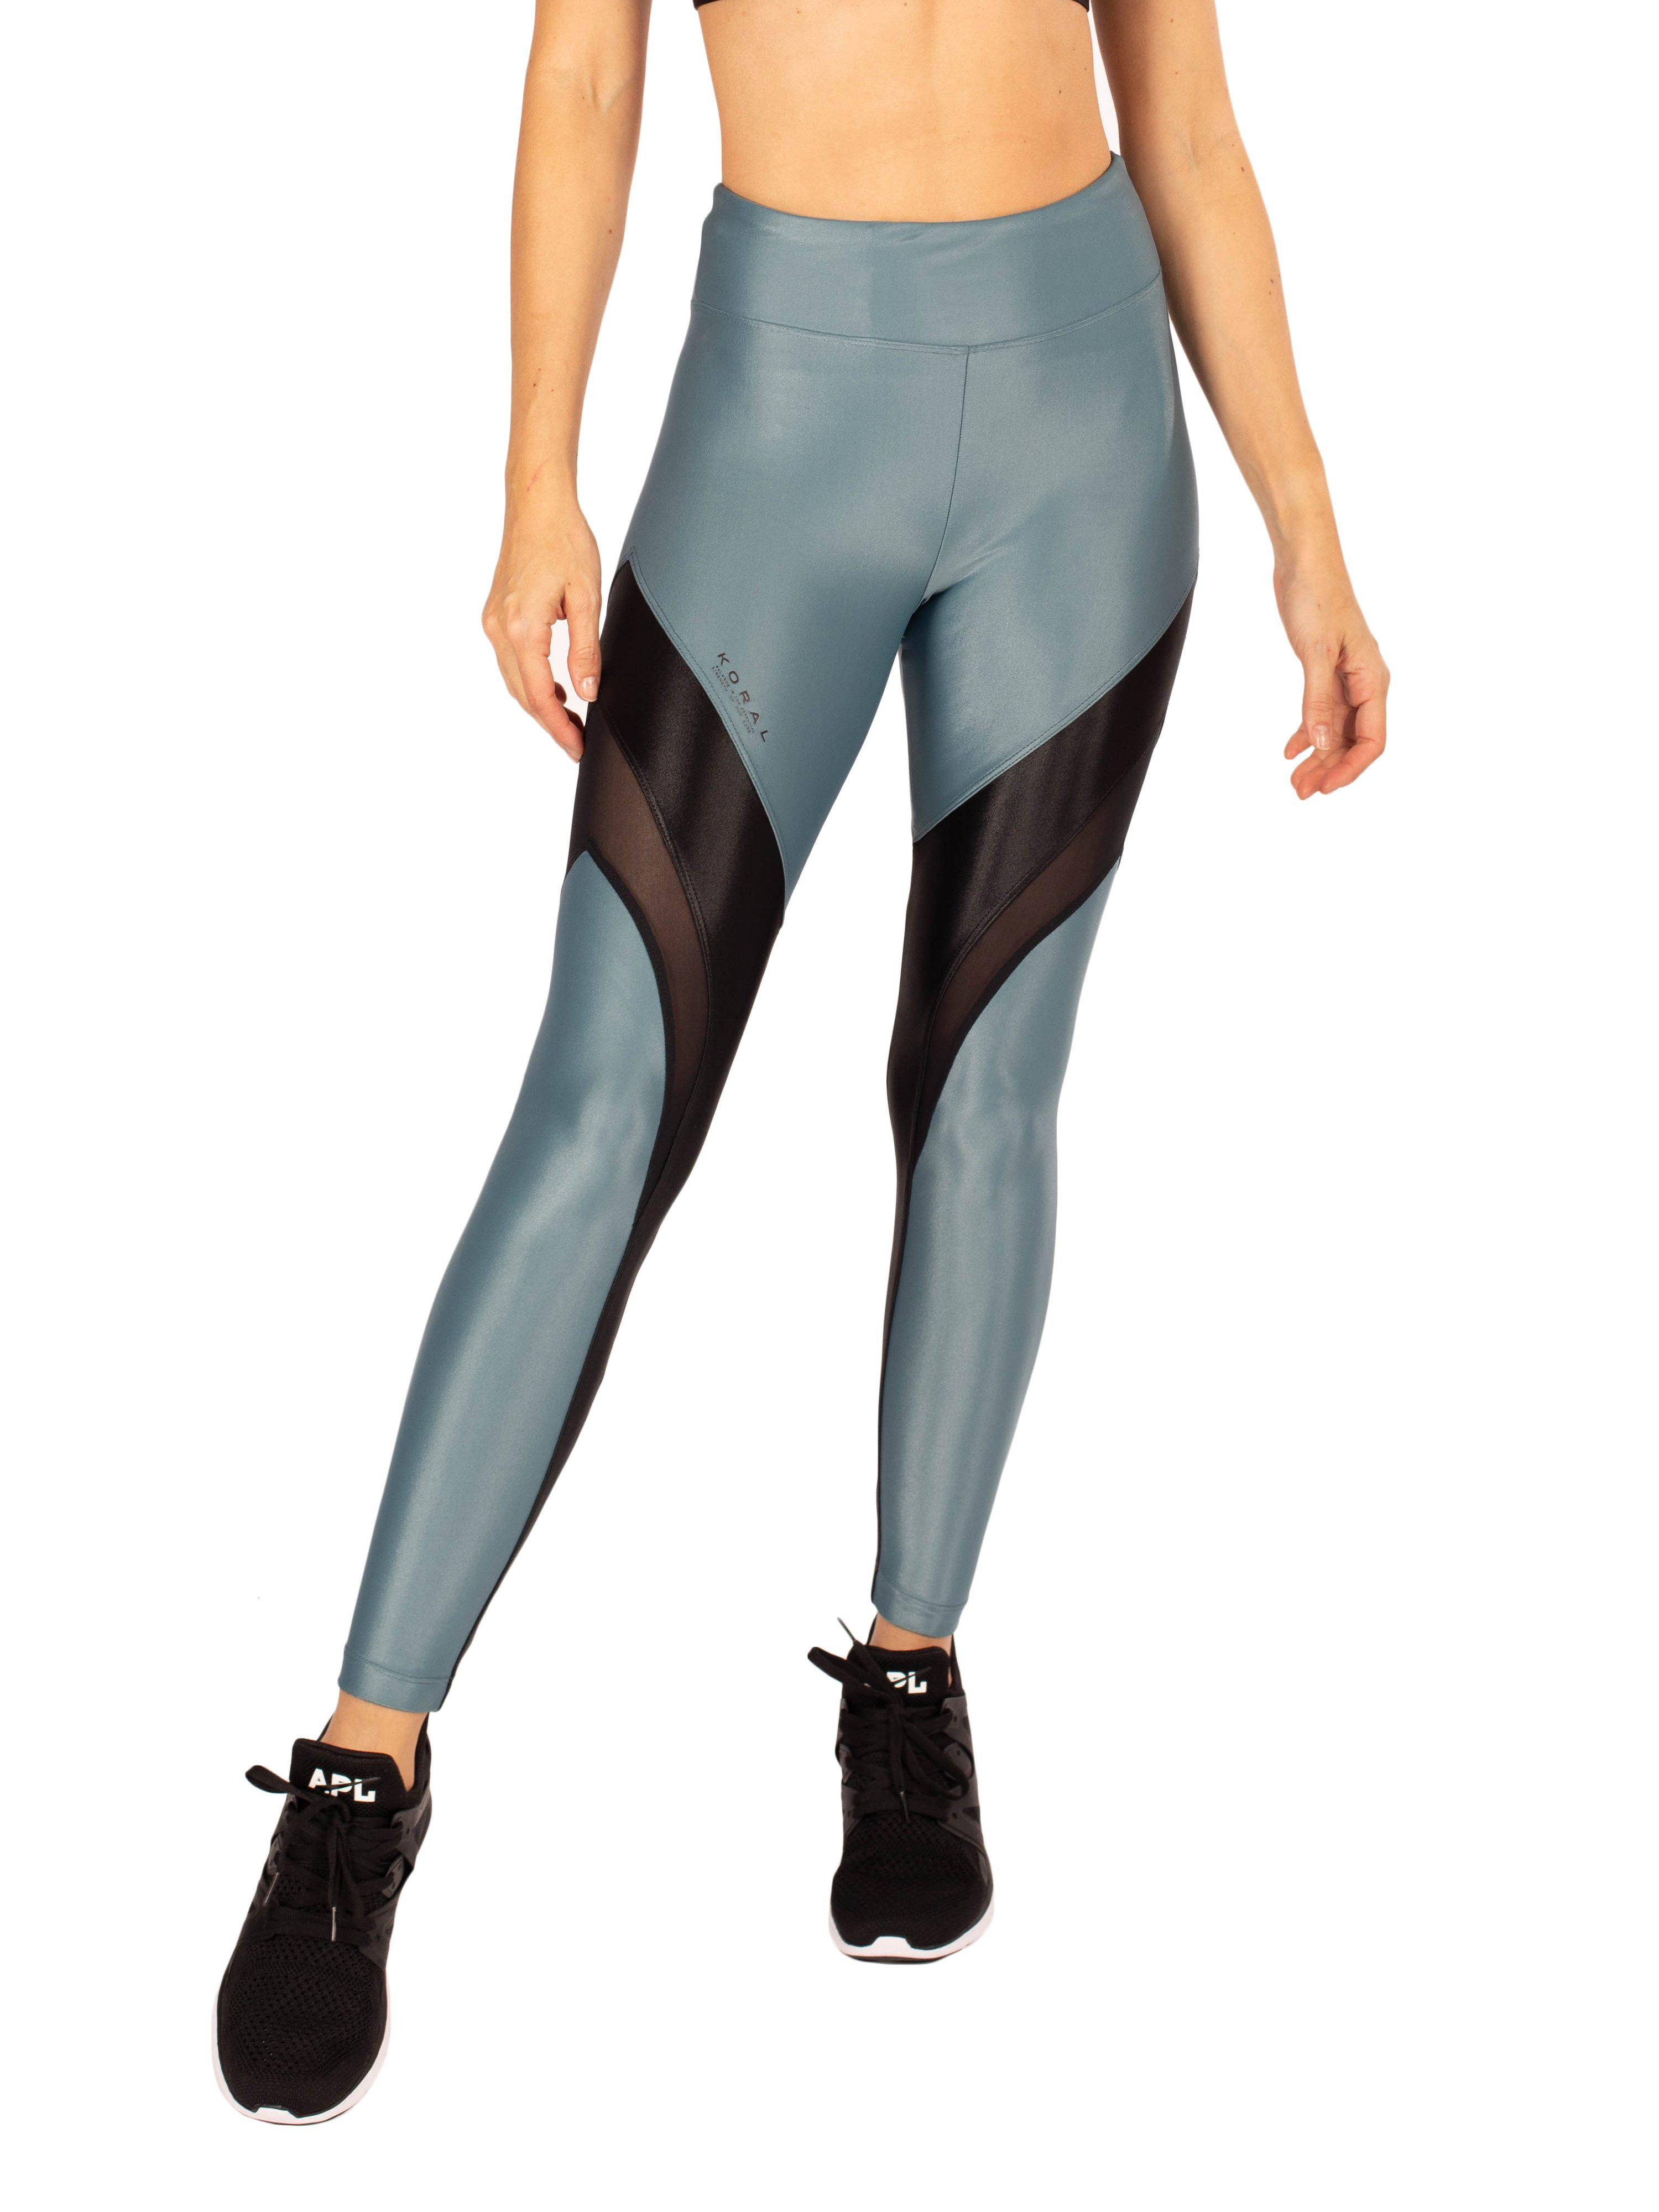 Frame High Rise Infinity Legging - Teal with Black